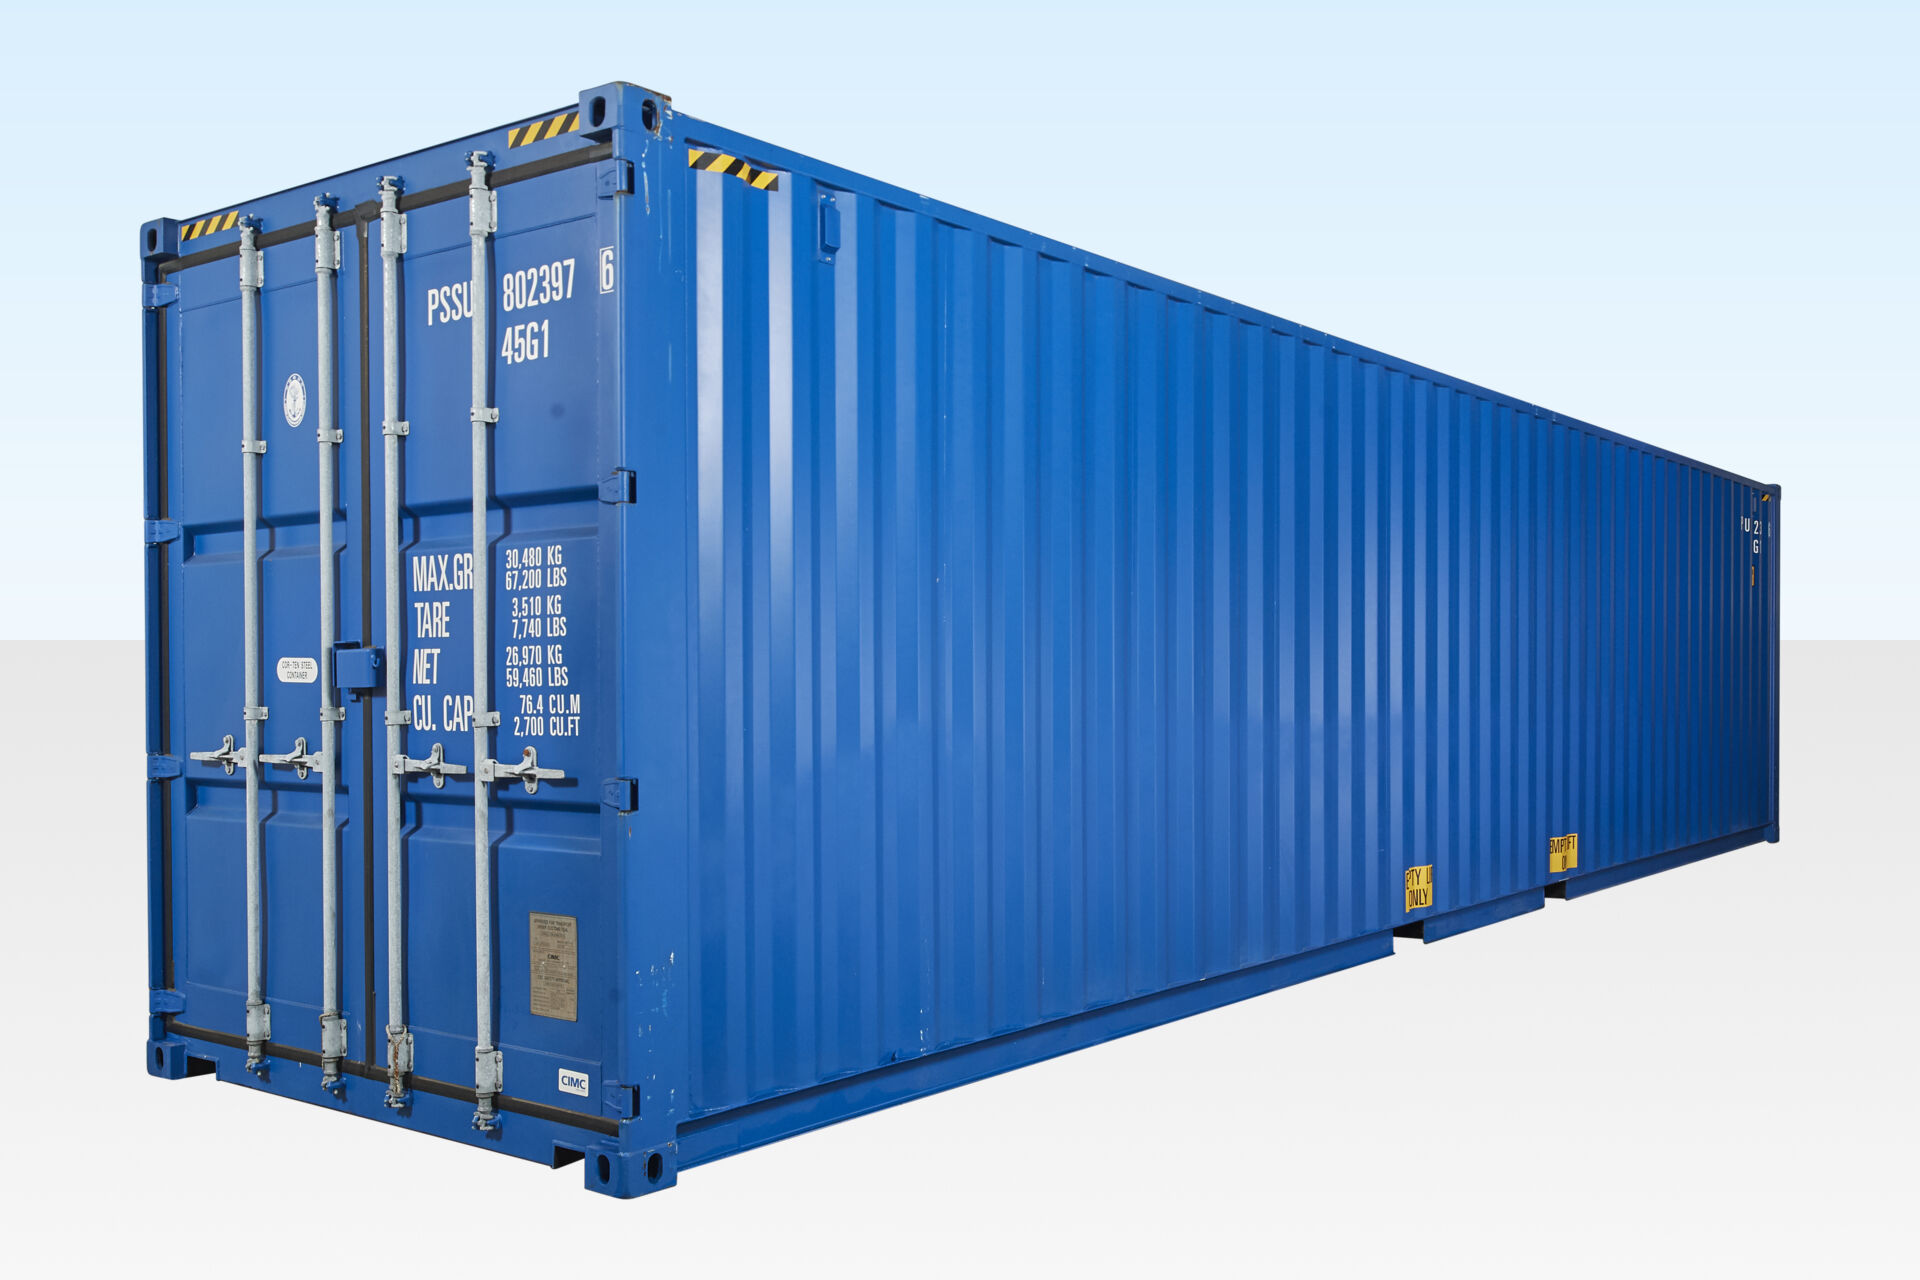 40ft Shipping Container >> 40ft High Cube Container One Trip 9ft 6 High